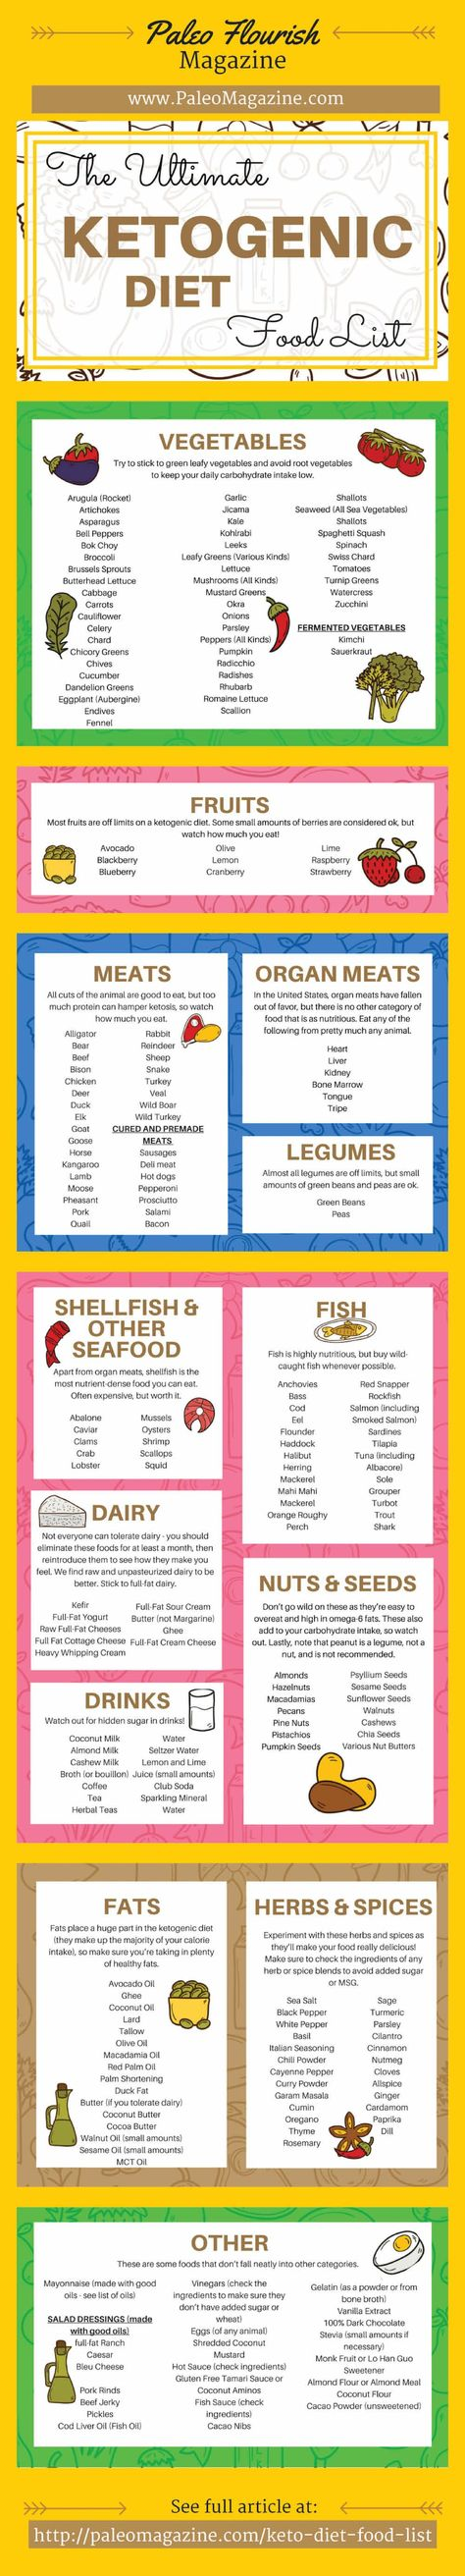 Ketogenic Diet Food List Infographic - http://paleomagazine.com/ketogenic-diet-food-list #ketogenic #keto